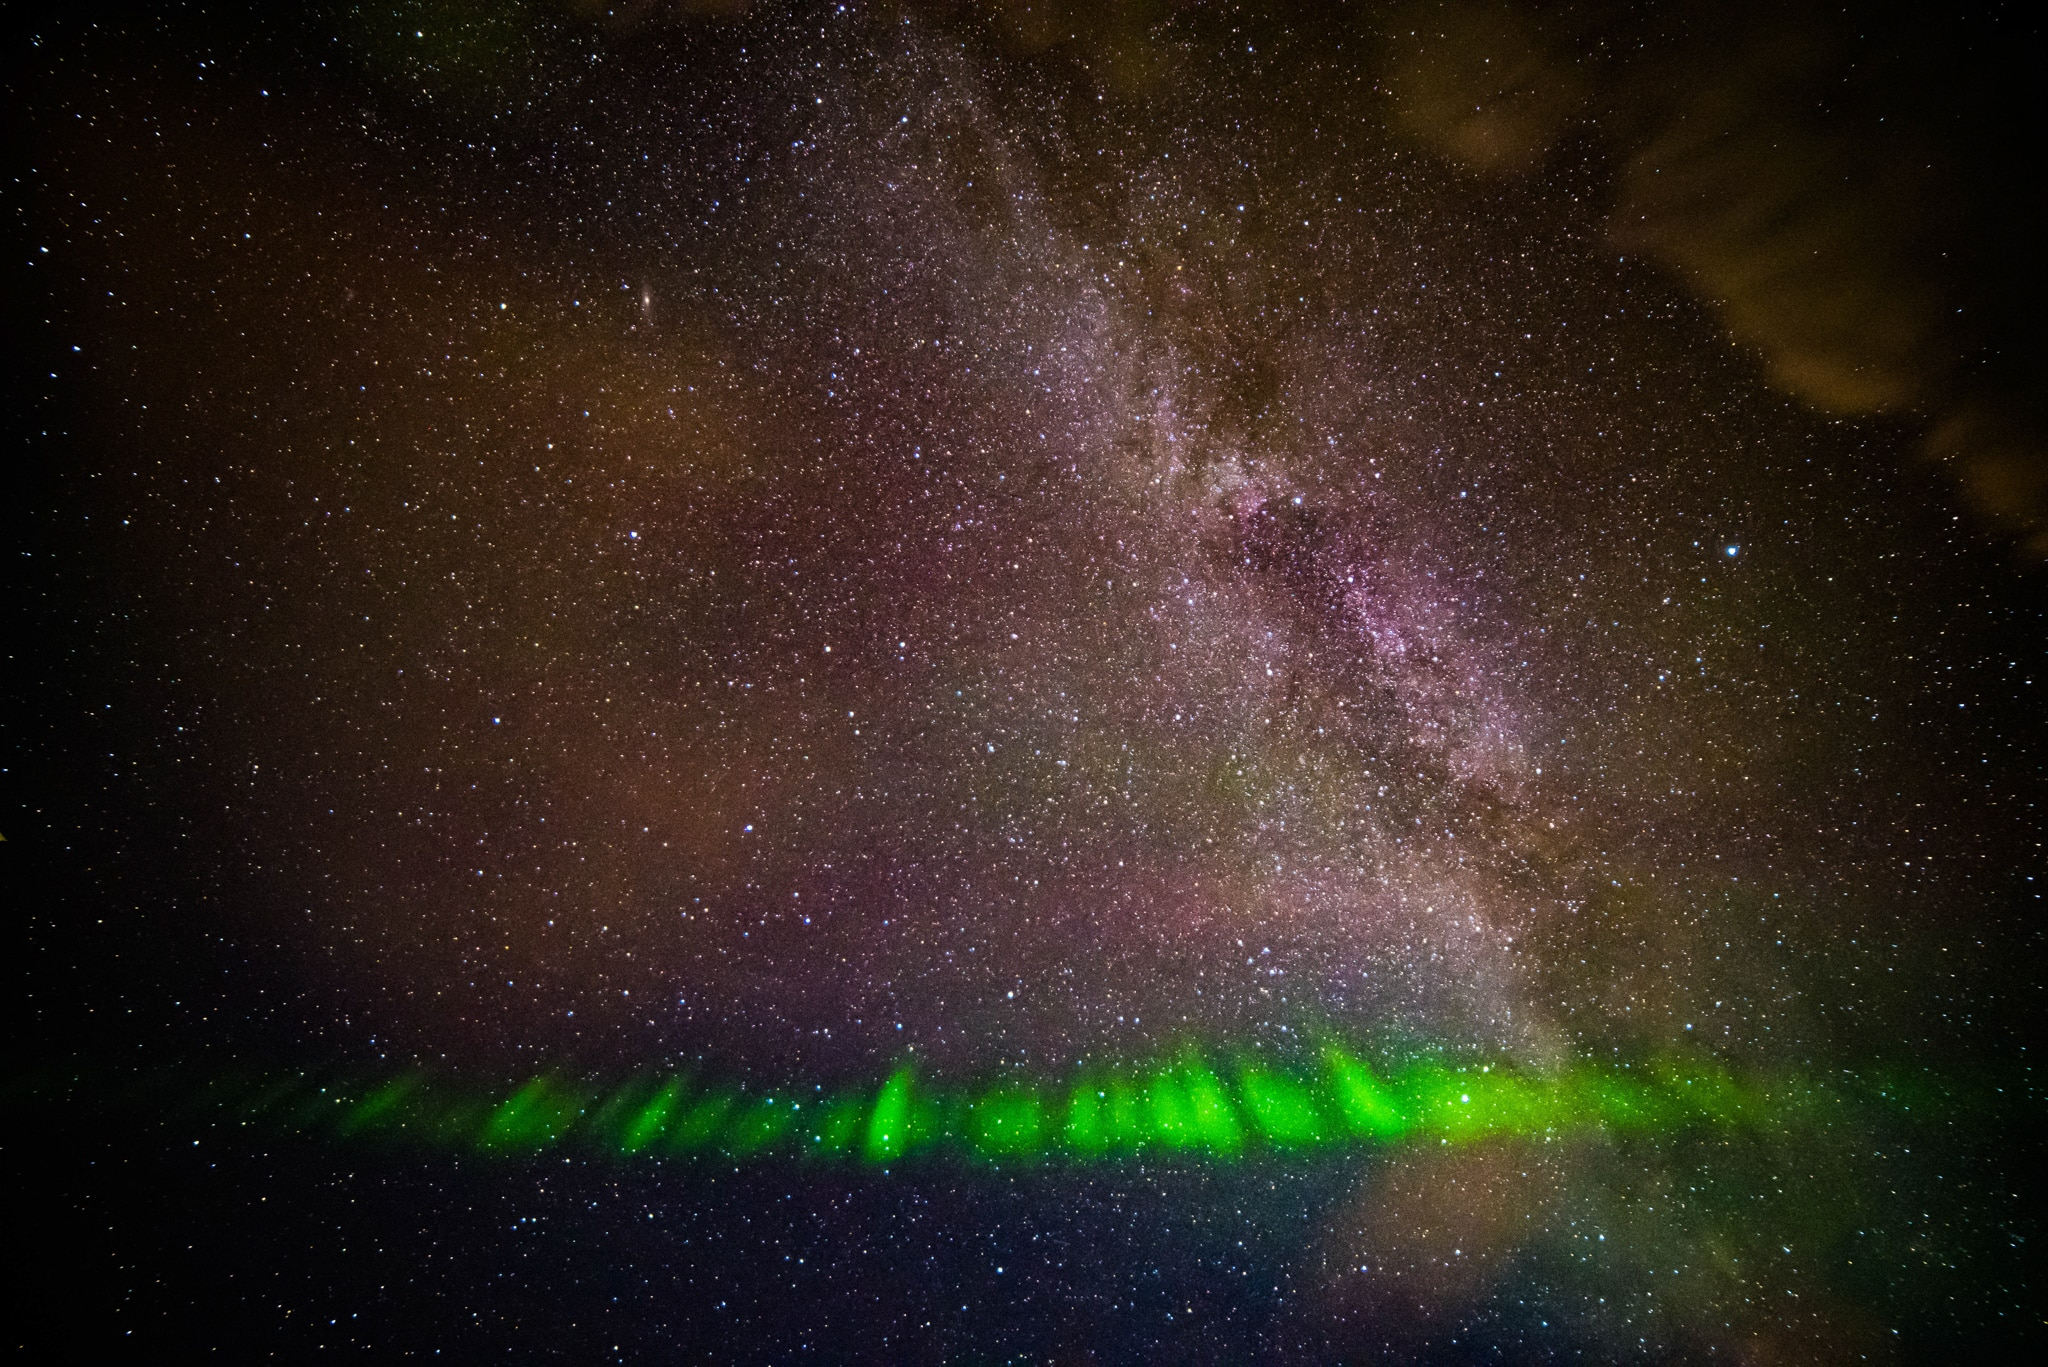 Green streaks and purple light in night sky (Courtesy of Megan Hoffman/NASA)